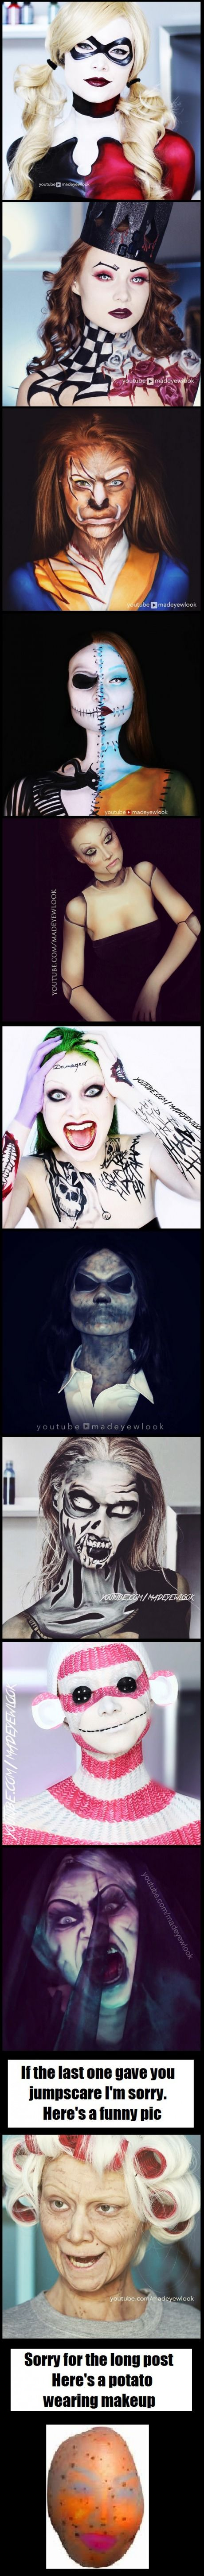 Same girl - with different makeup: